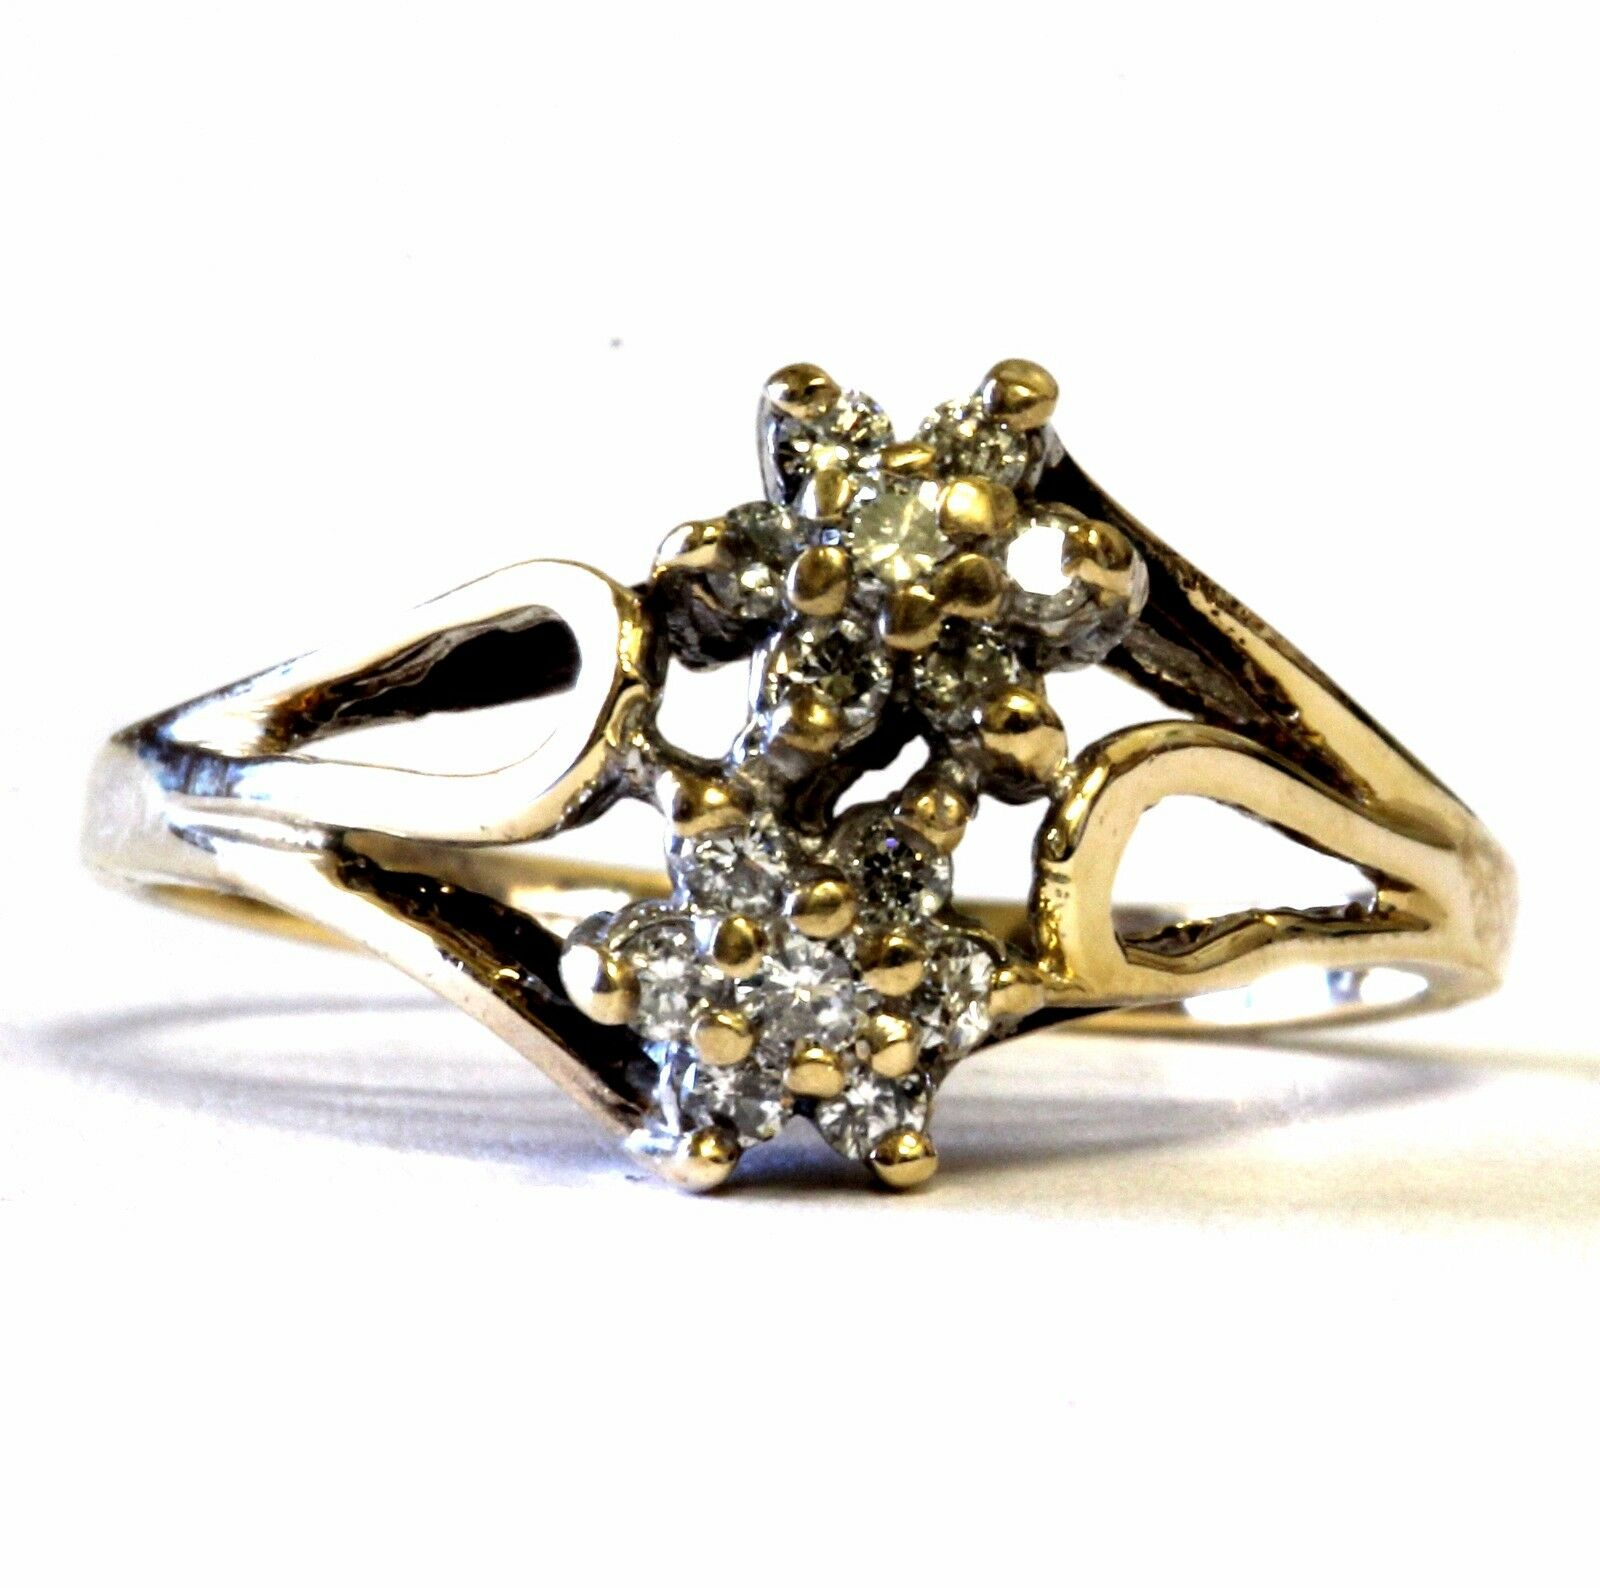 10k yellow gold womens .16ct SI1 H round diamond cluster flower ring 2.6g estate